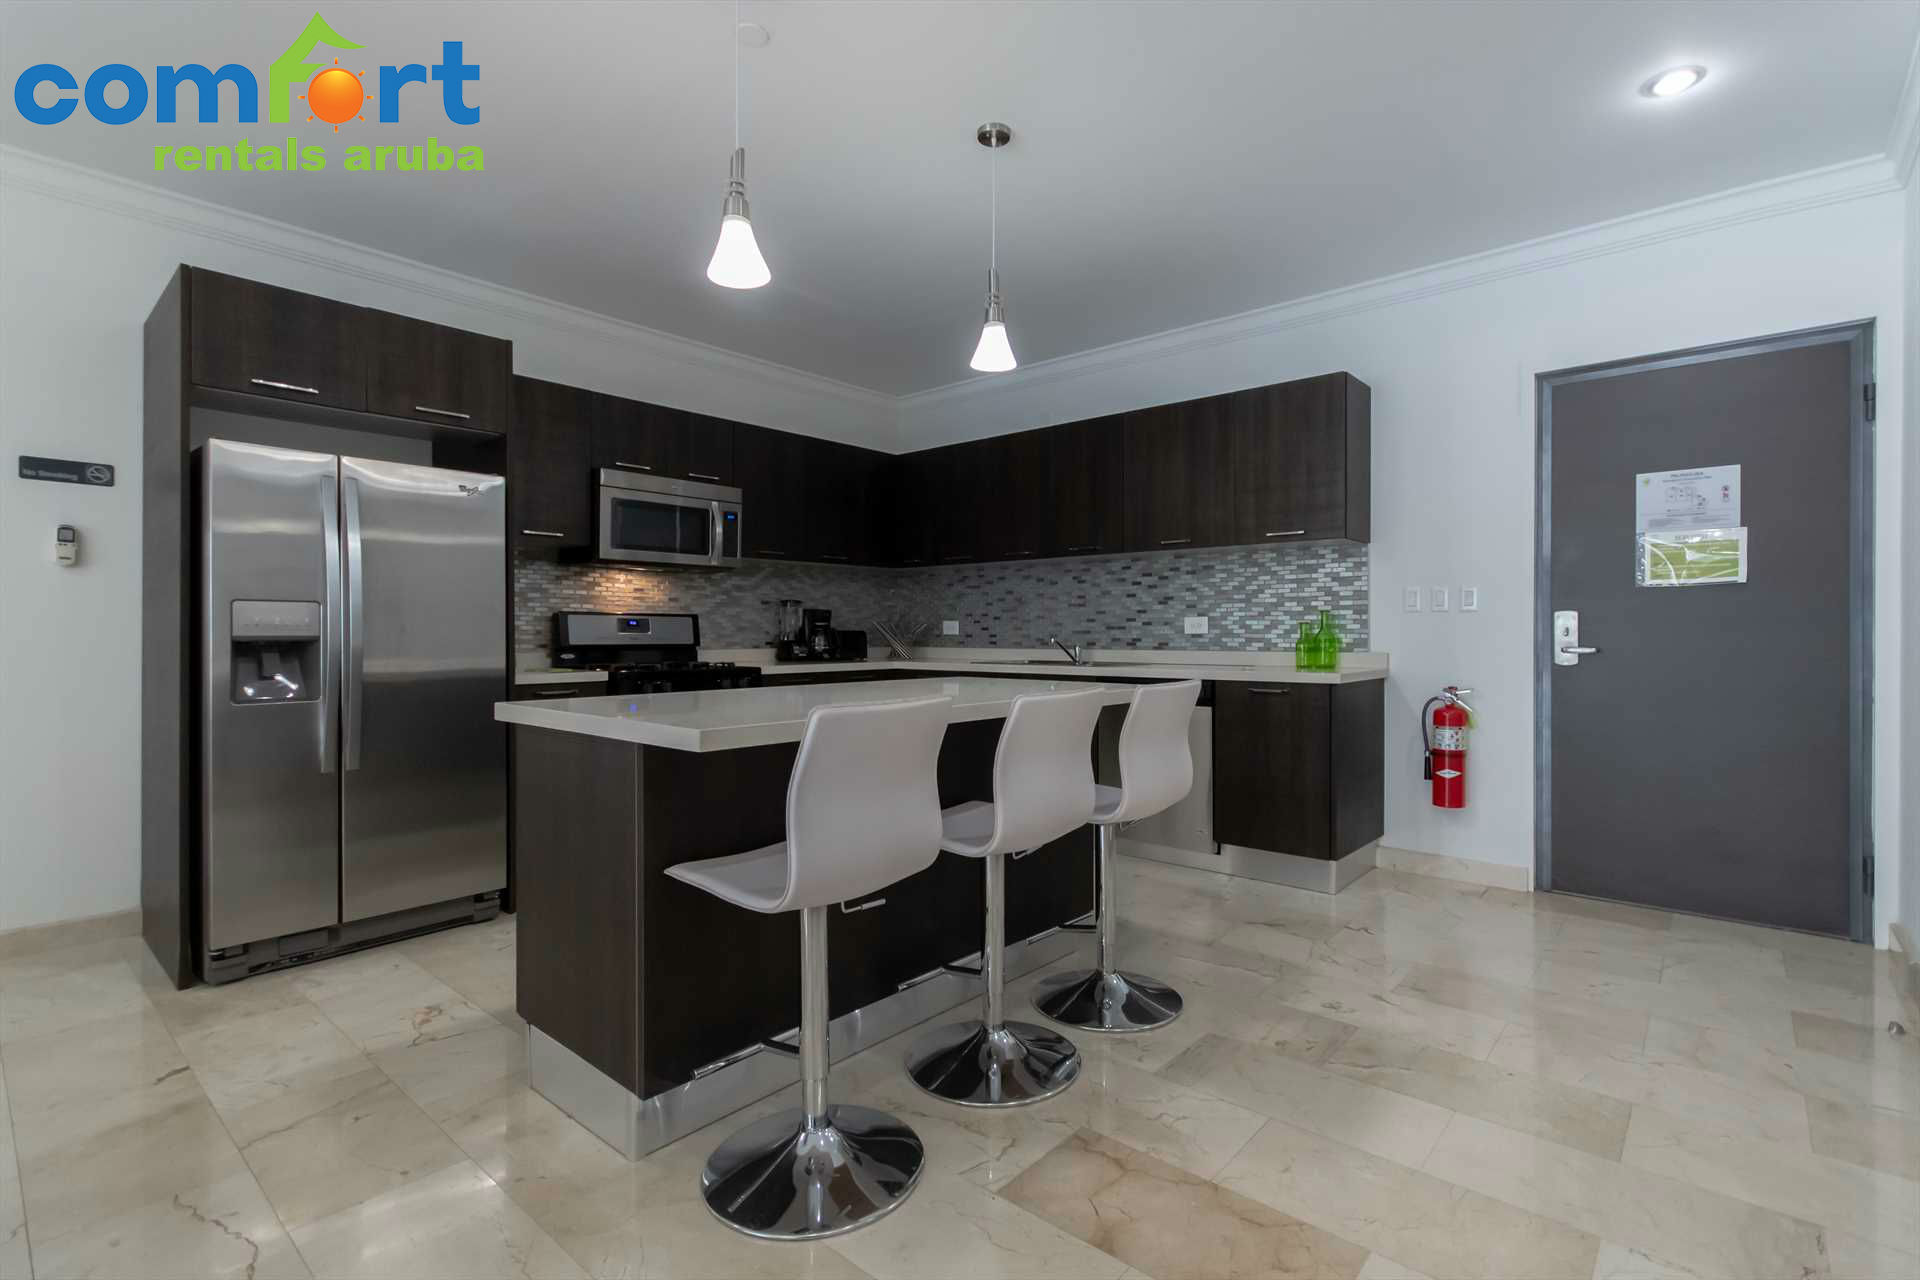 The spacious fully equipped open kitchen and bar-chairs